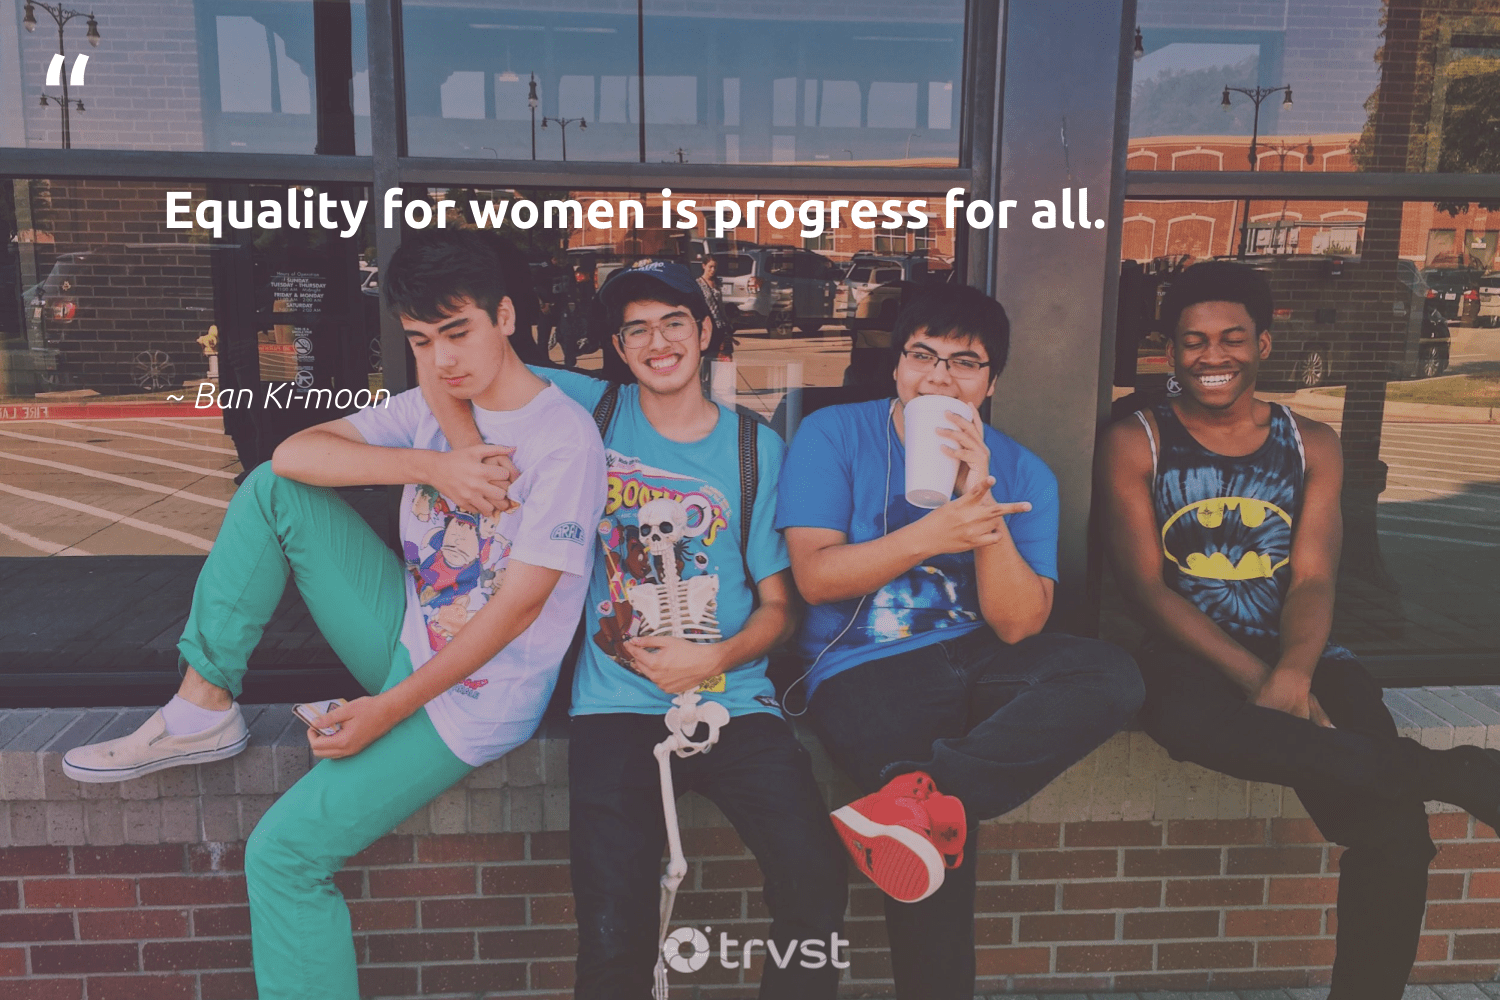 """Equality for women is progress for all.""  - Ban Ki-moon #trvst #quotes #equality #women #equalrights #giveback #makeadifference #planetearthfirst #equalopportunity #socialchange #bethechange #takeaction"